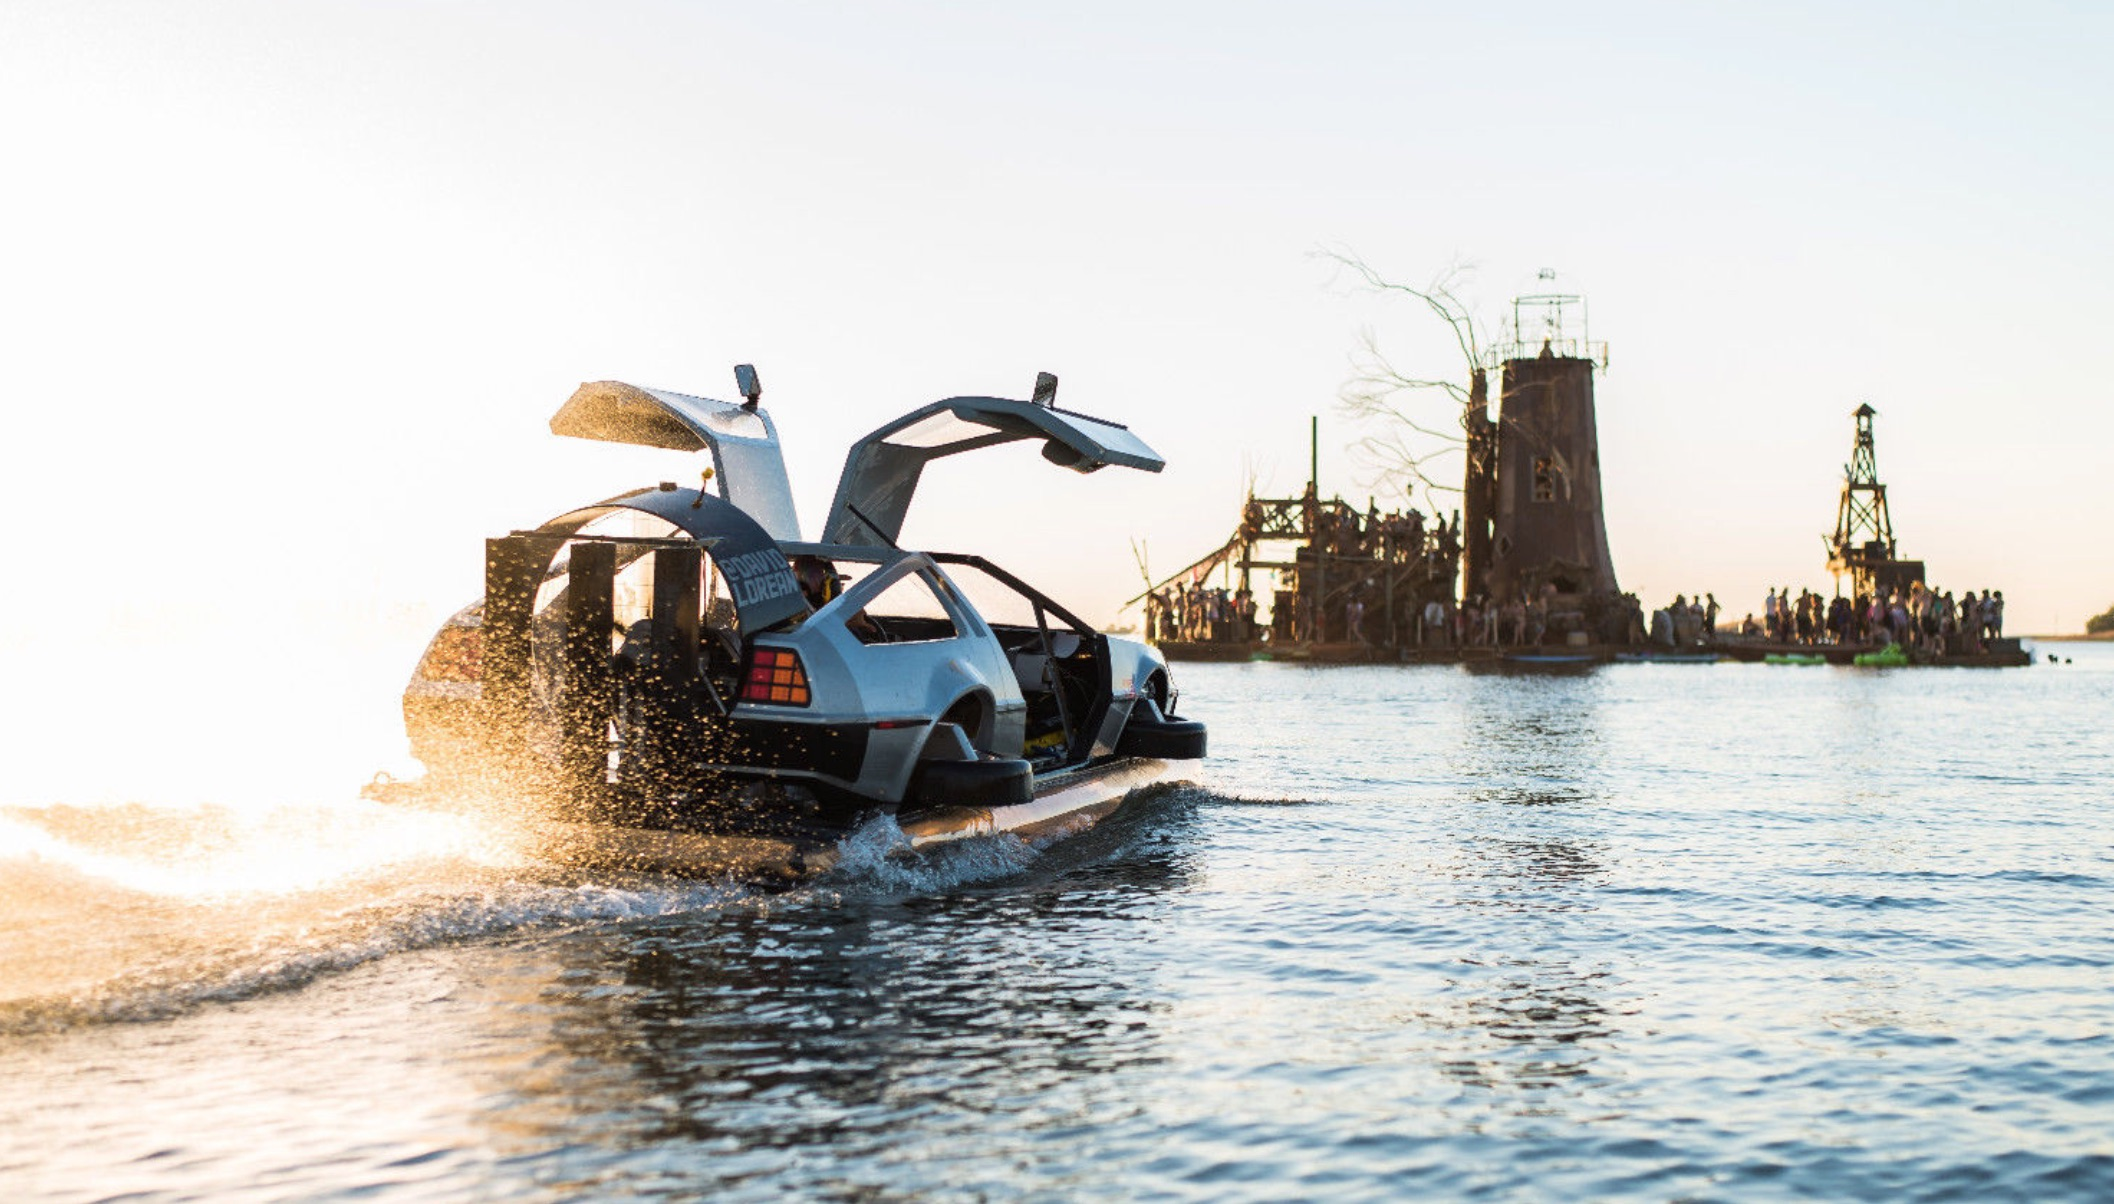 Delorean hovercraft for sale